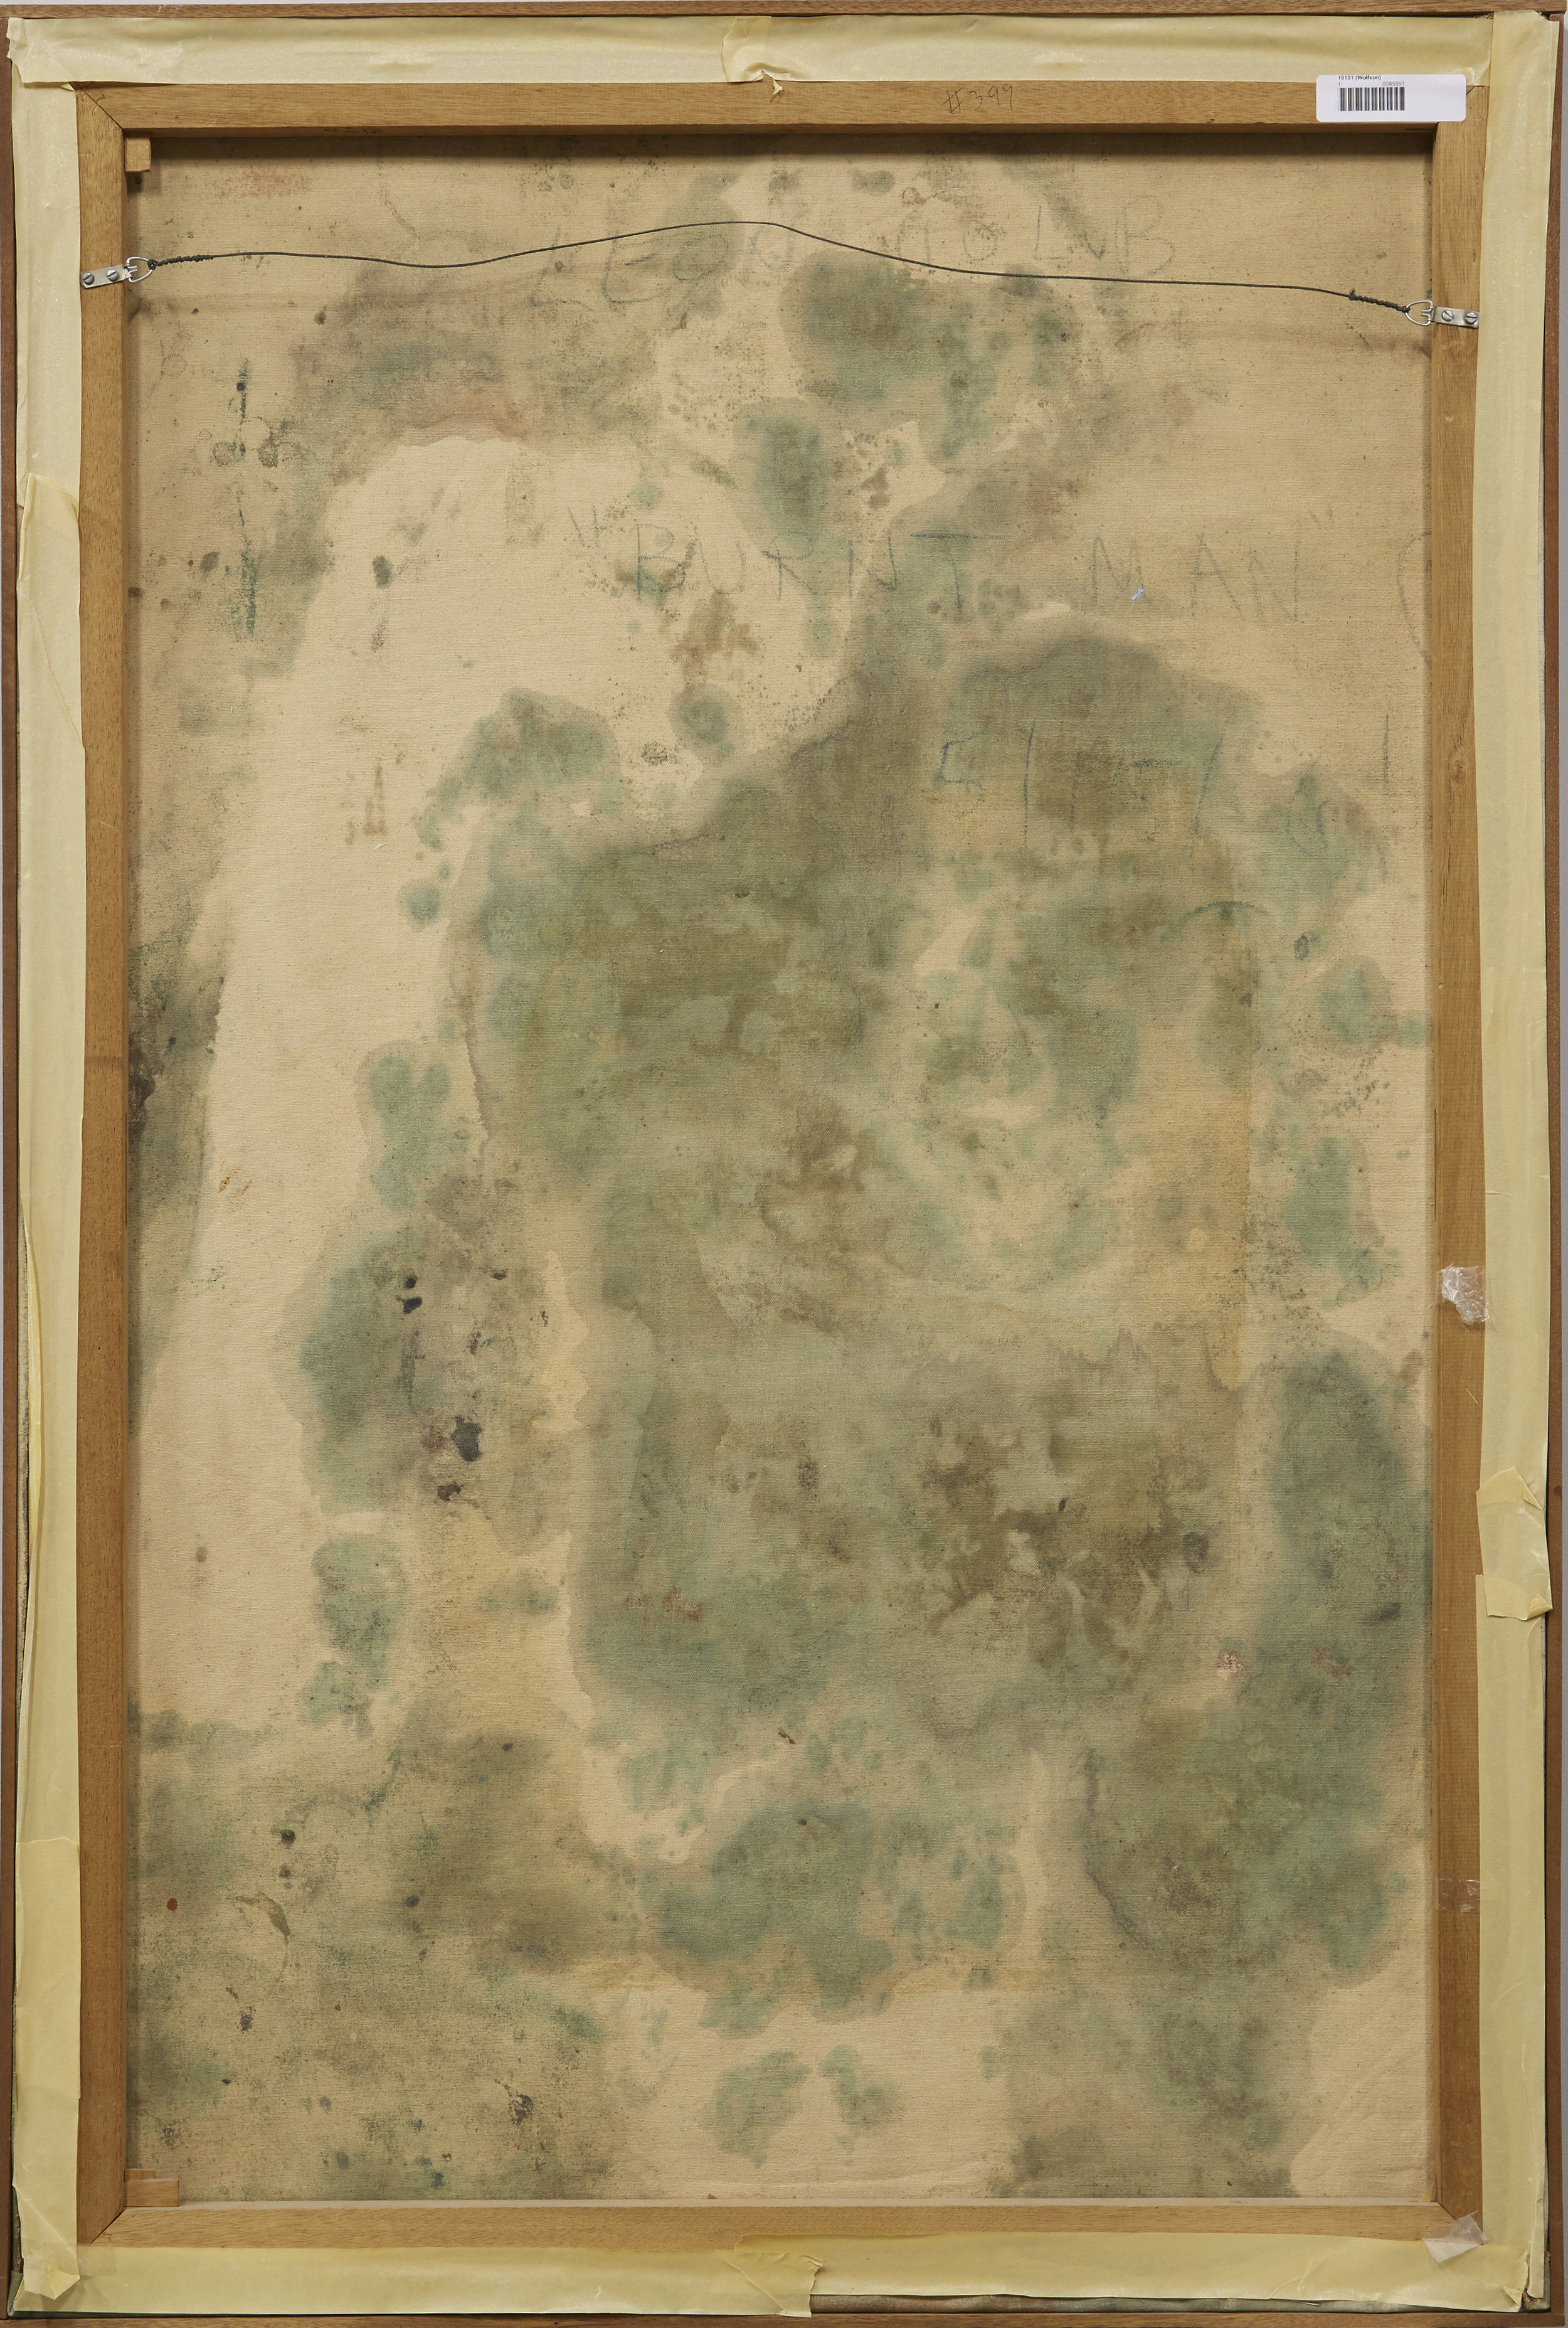 Verso of  Burnt Man  by Leon Golub, showing the unprimed canvas' absorption of the paint.